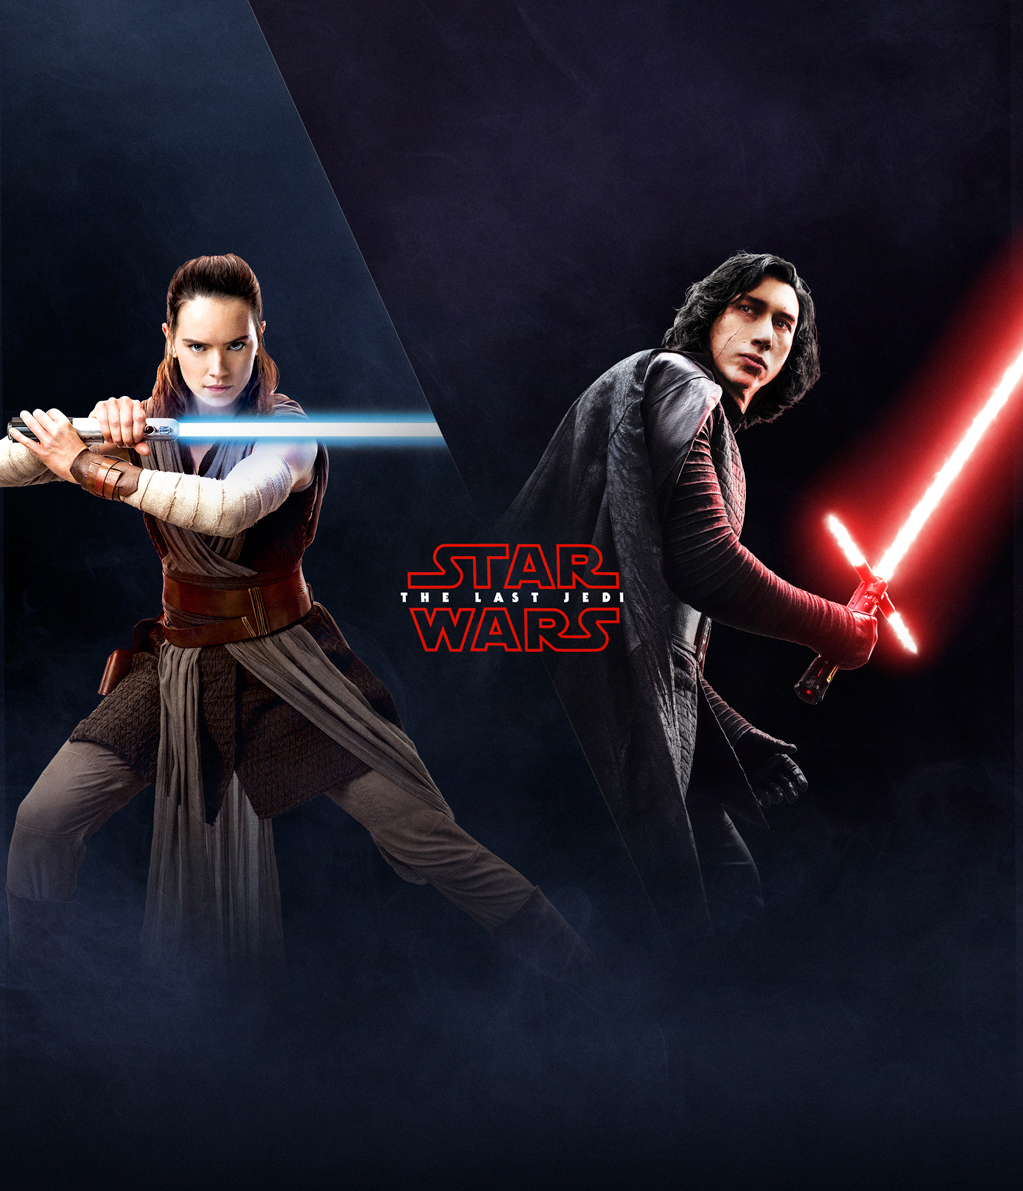 Jedi Wallpaper: Do Or Do Not, There Is No Try